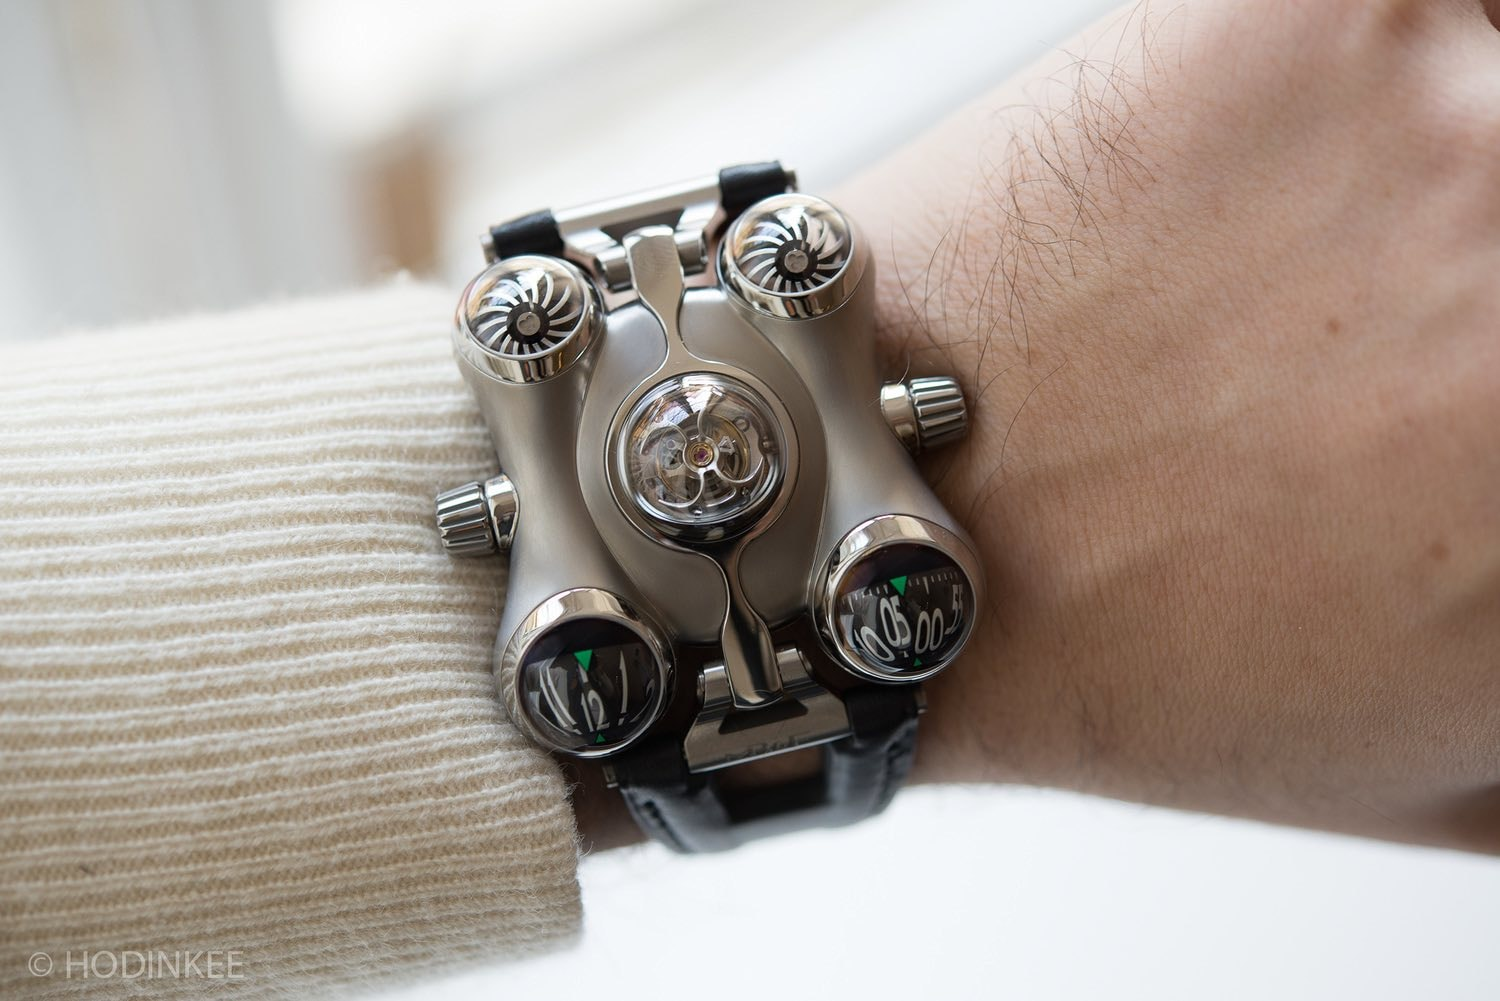 mb&f hm6 wristshot Introducing: The MB&F HM6 Alien Nation (Live Pics + Pricing) Introducing: The MB&F HM6 Alien Nation (Live Pics + Pricing) hm6